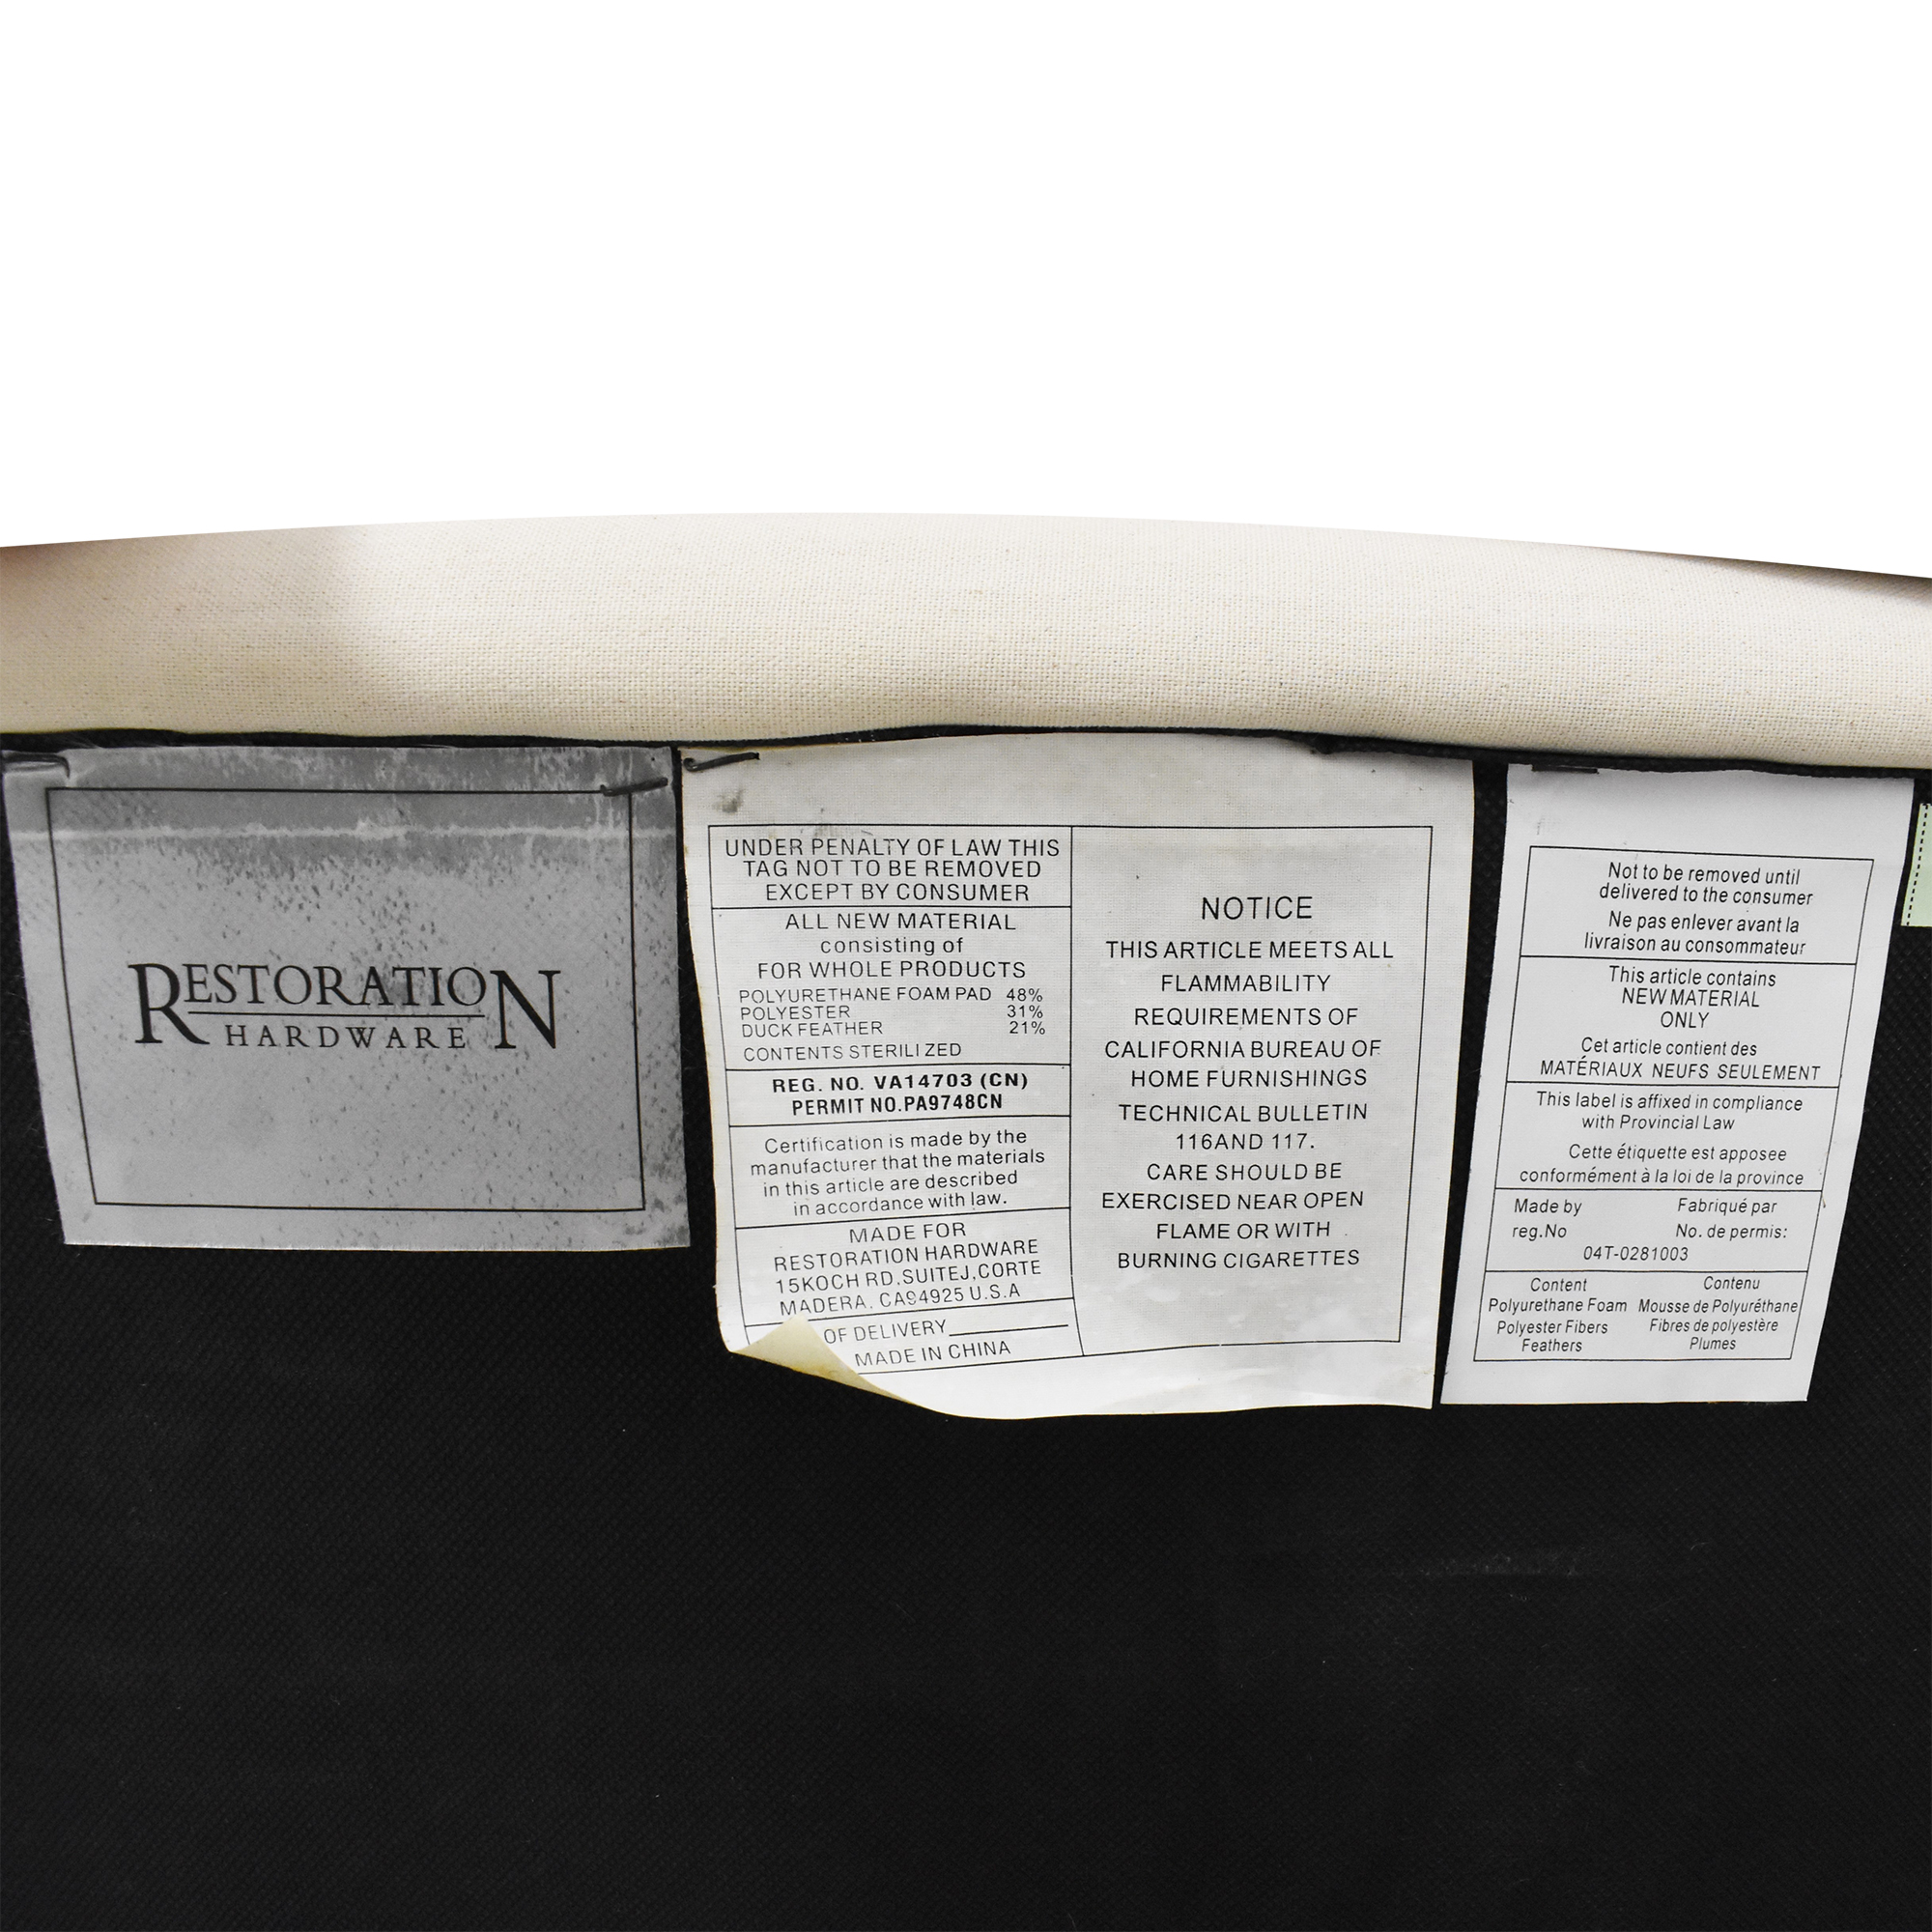 Restoration Hardware Restoration Hardware Grand-Scale Roll Arm Chair ma